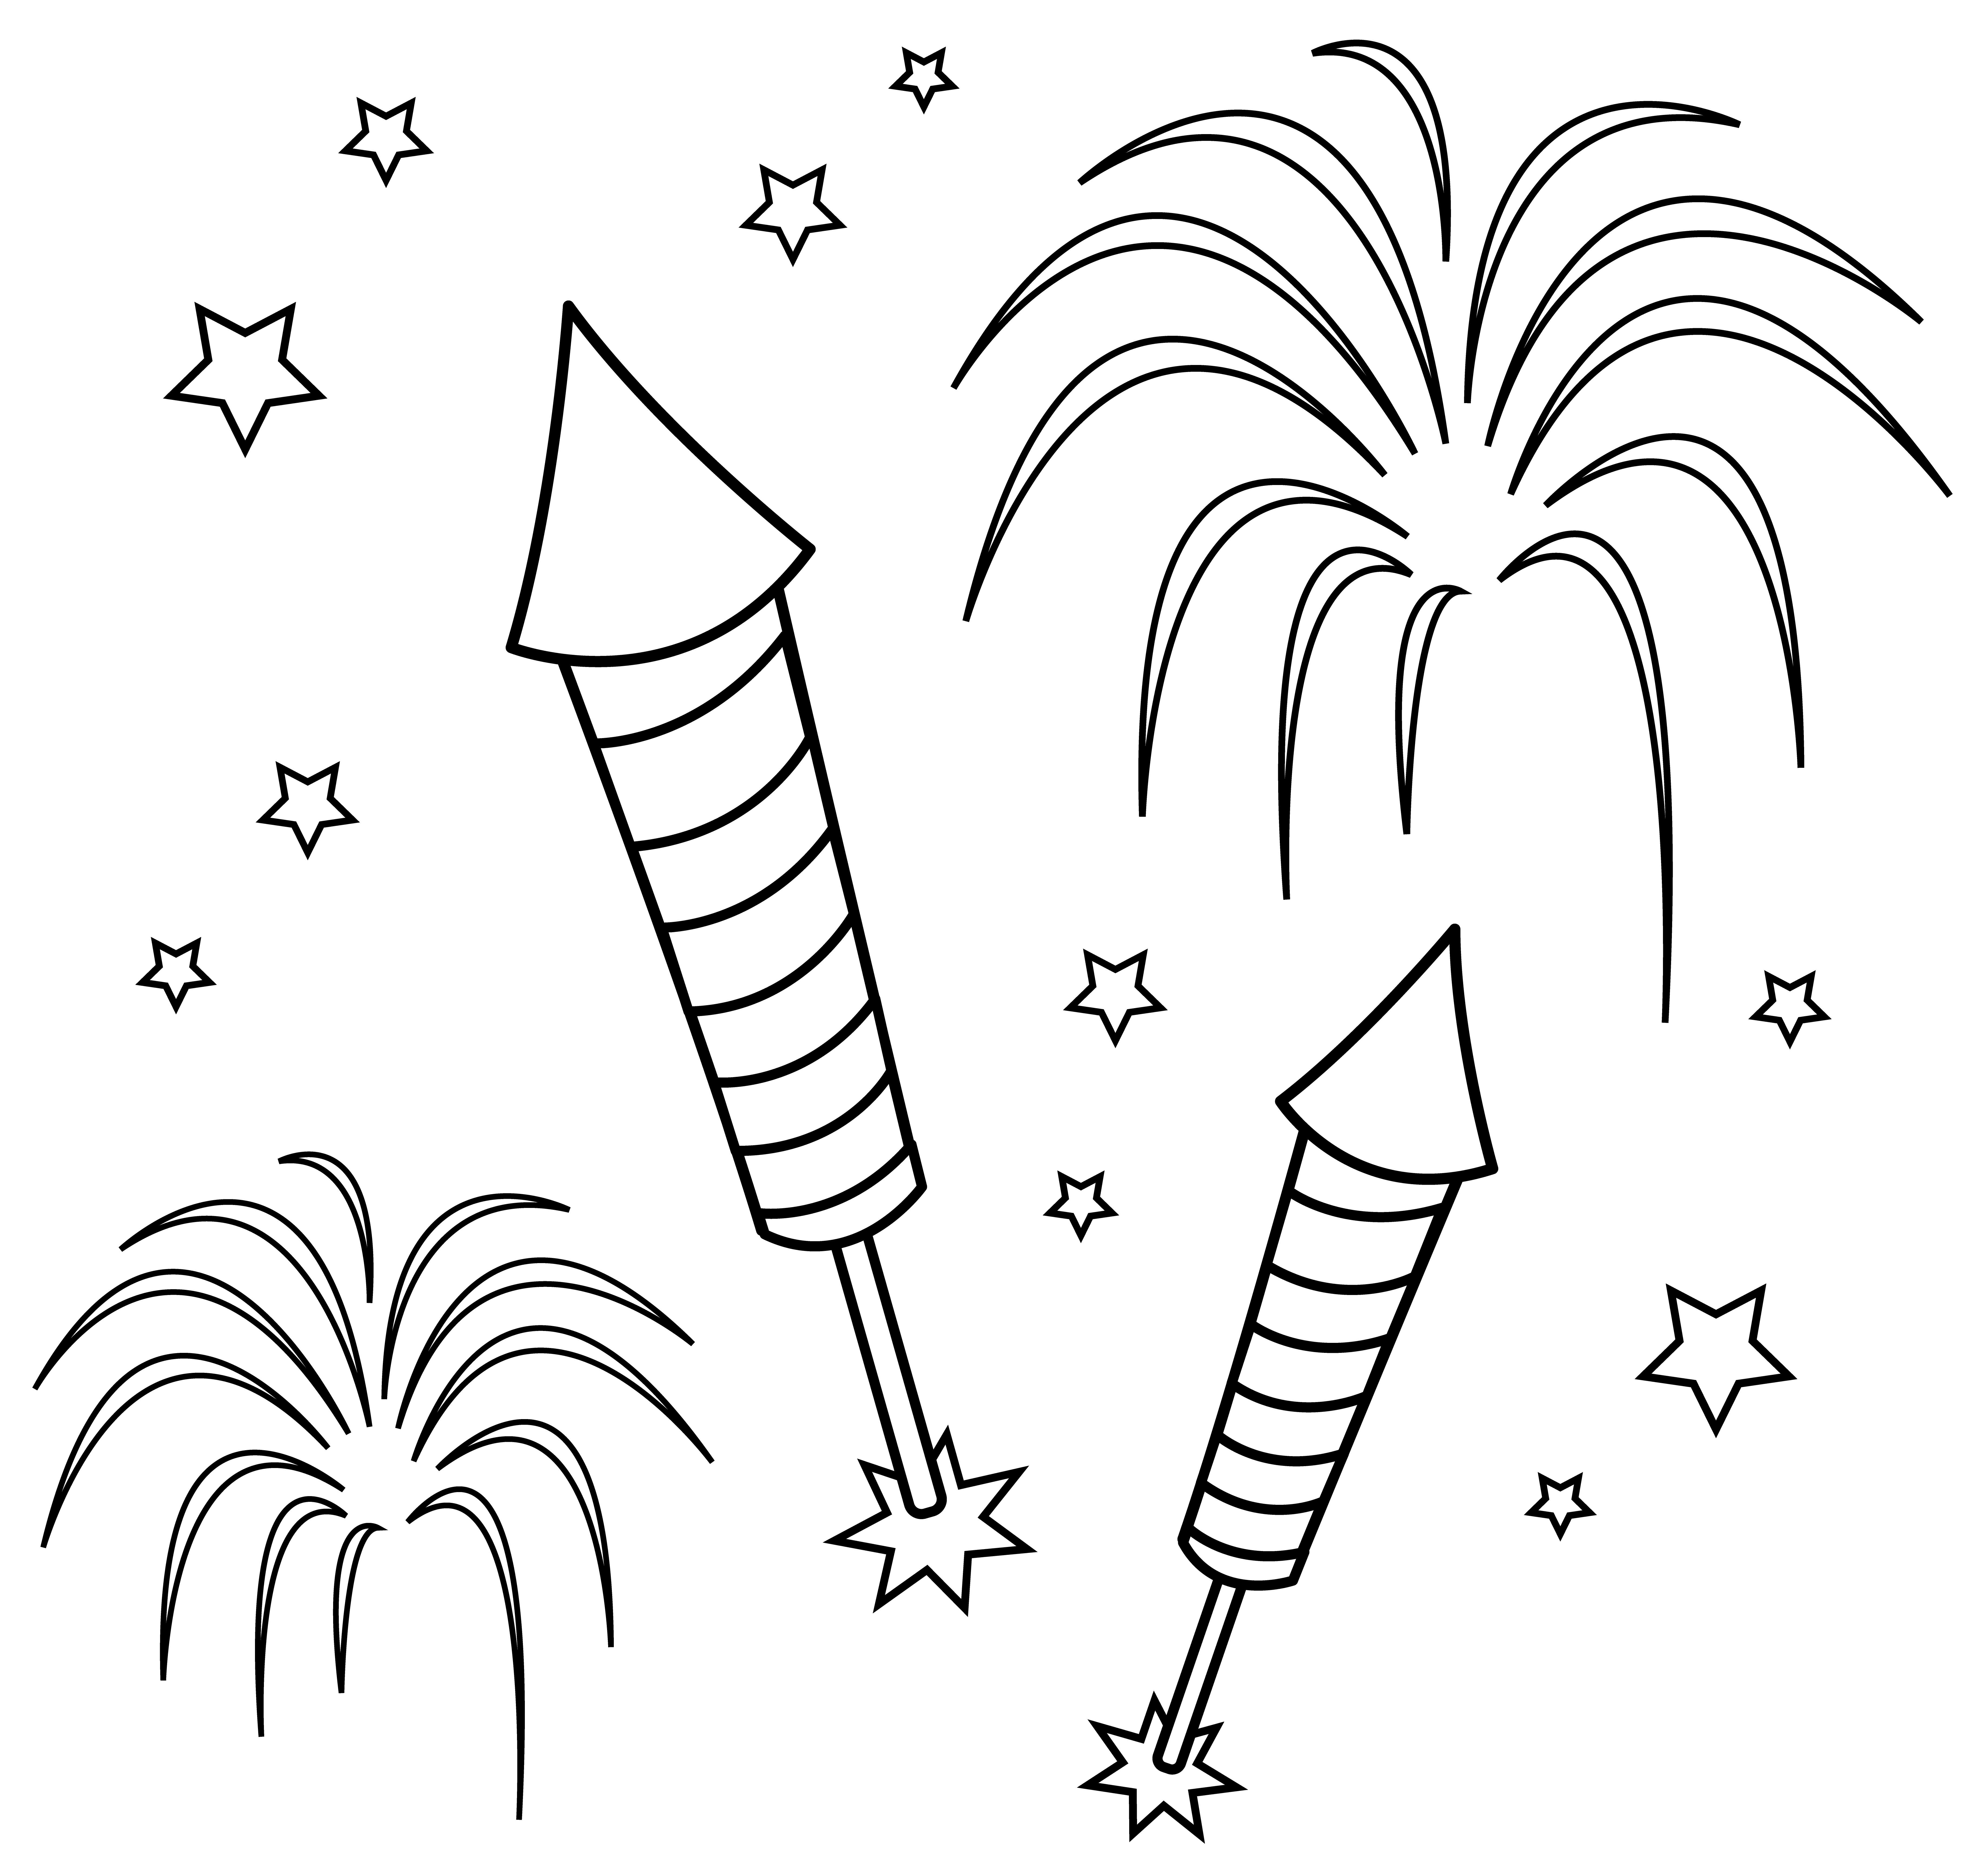 Fireworks Colorable 0 Png 7 341 6 939 Pixels How To Draw Fireworks Fireworks Pictures Coloring Pages For Kids